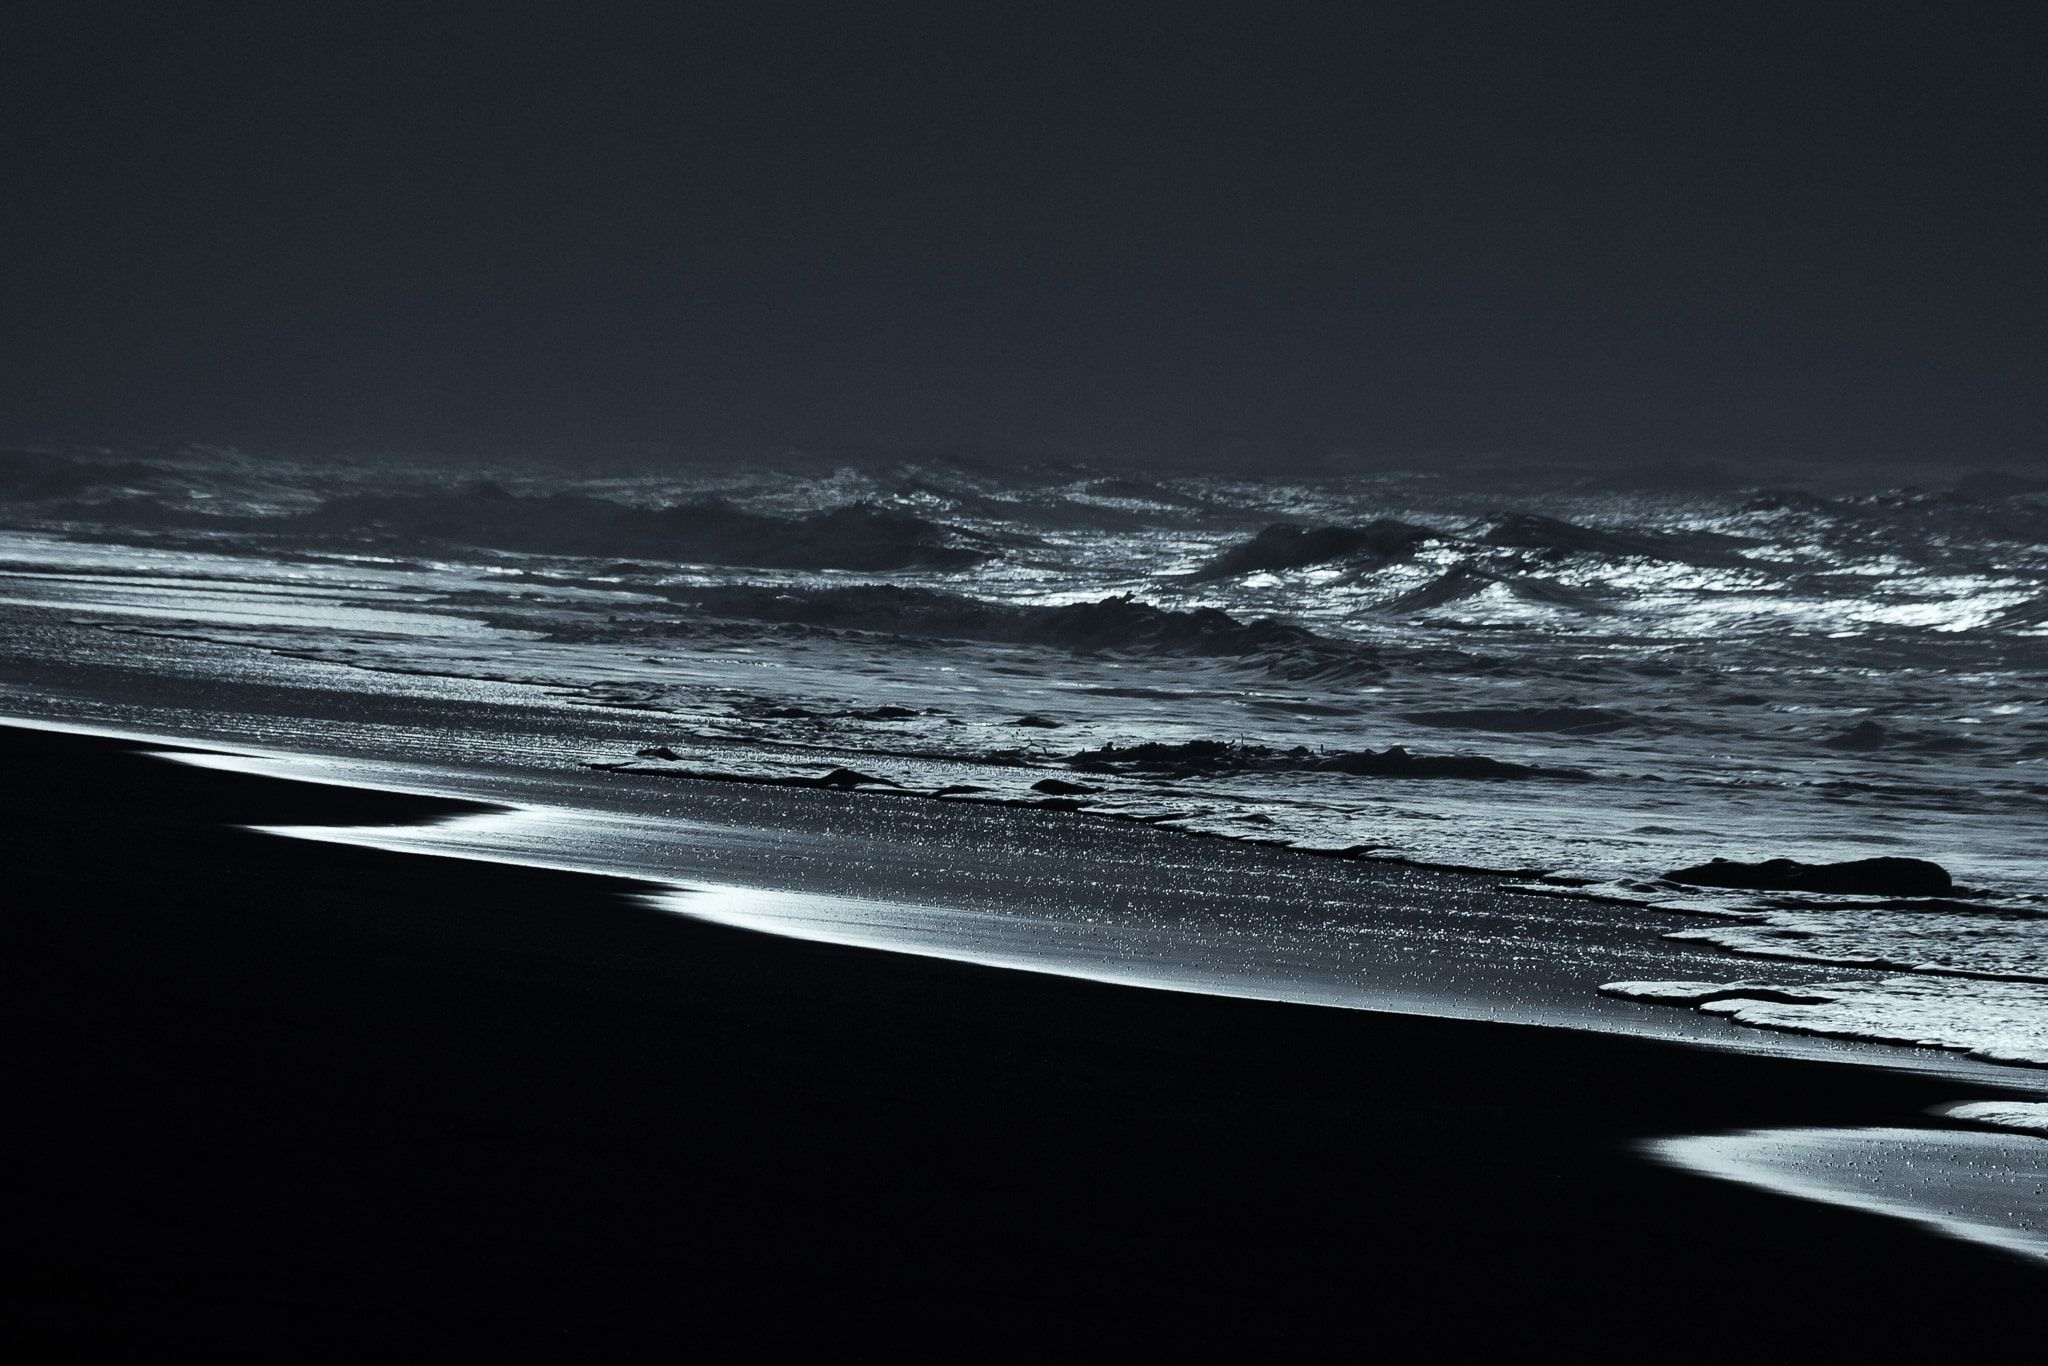 Silvery Sea Shore - Black and White Photograph of Sea Beach in Limited Edition Pigment Prints on Canvas and Matte Paper by Minhajul Haque